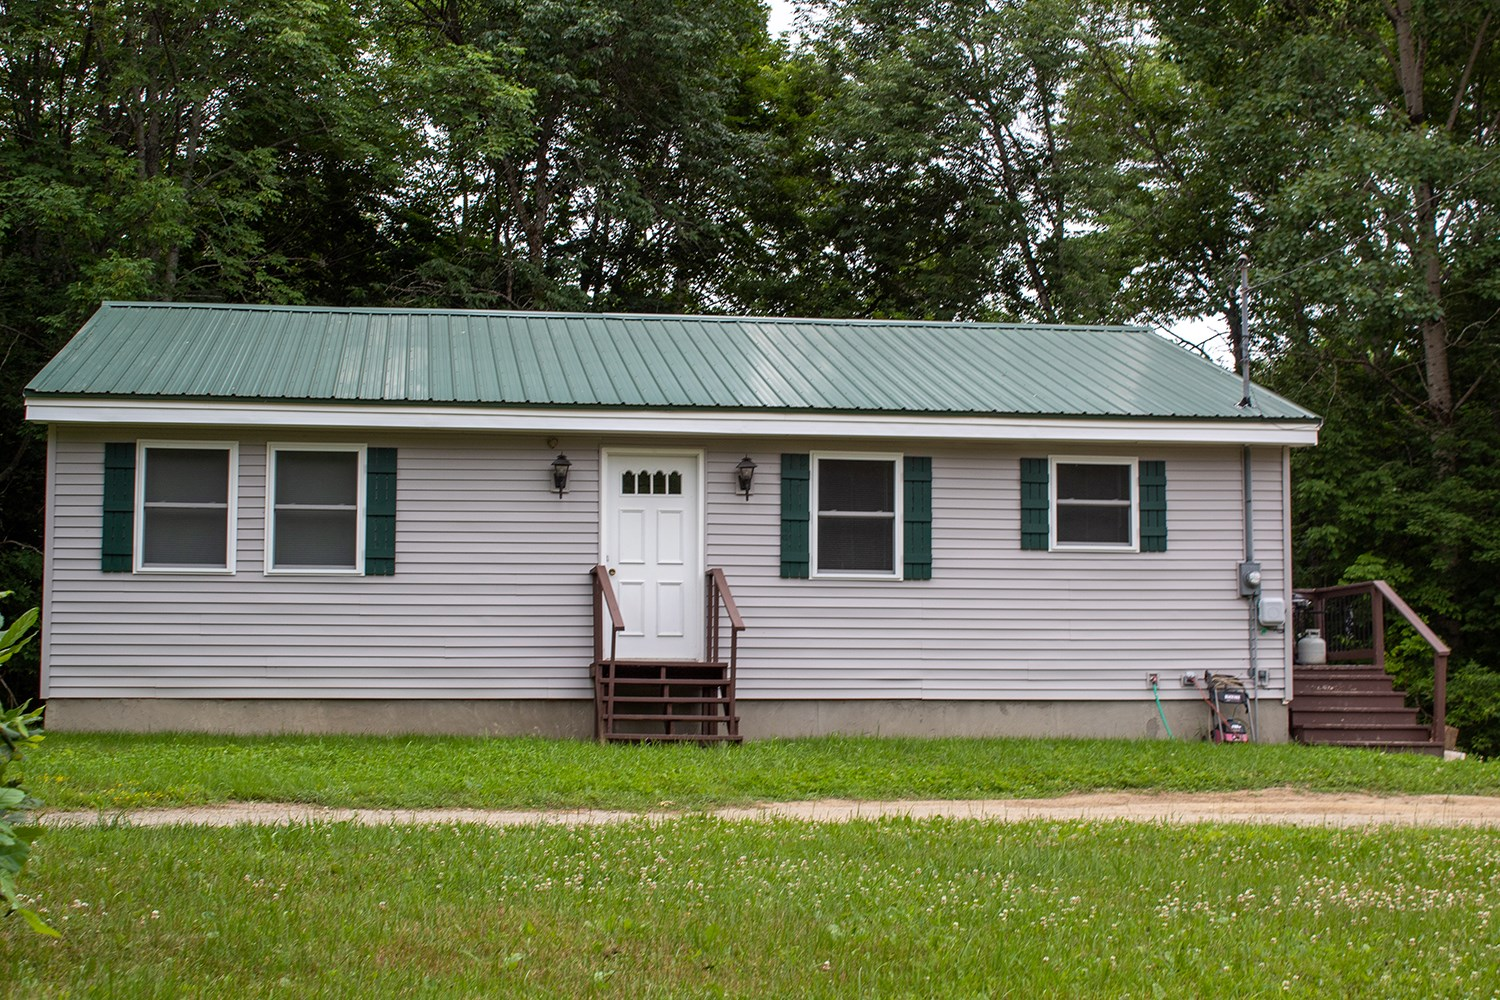 3 Bedroom Home For Sale in Lincoln, ME